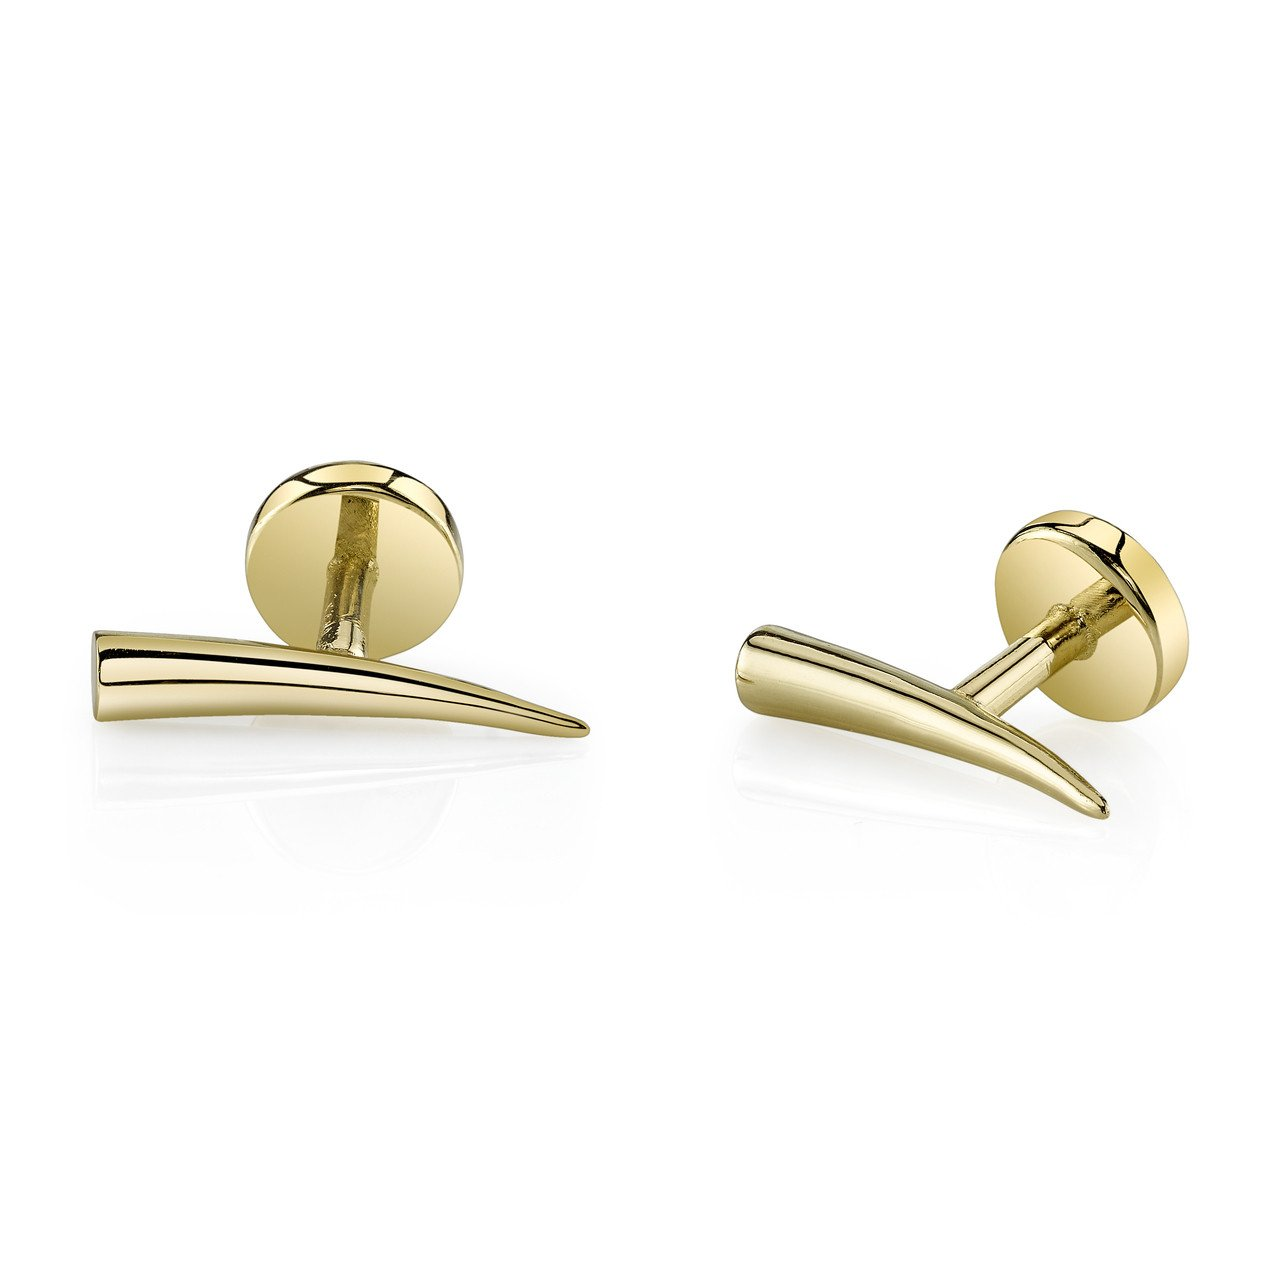 Tusk Cuff Links - Gabriela Artigas